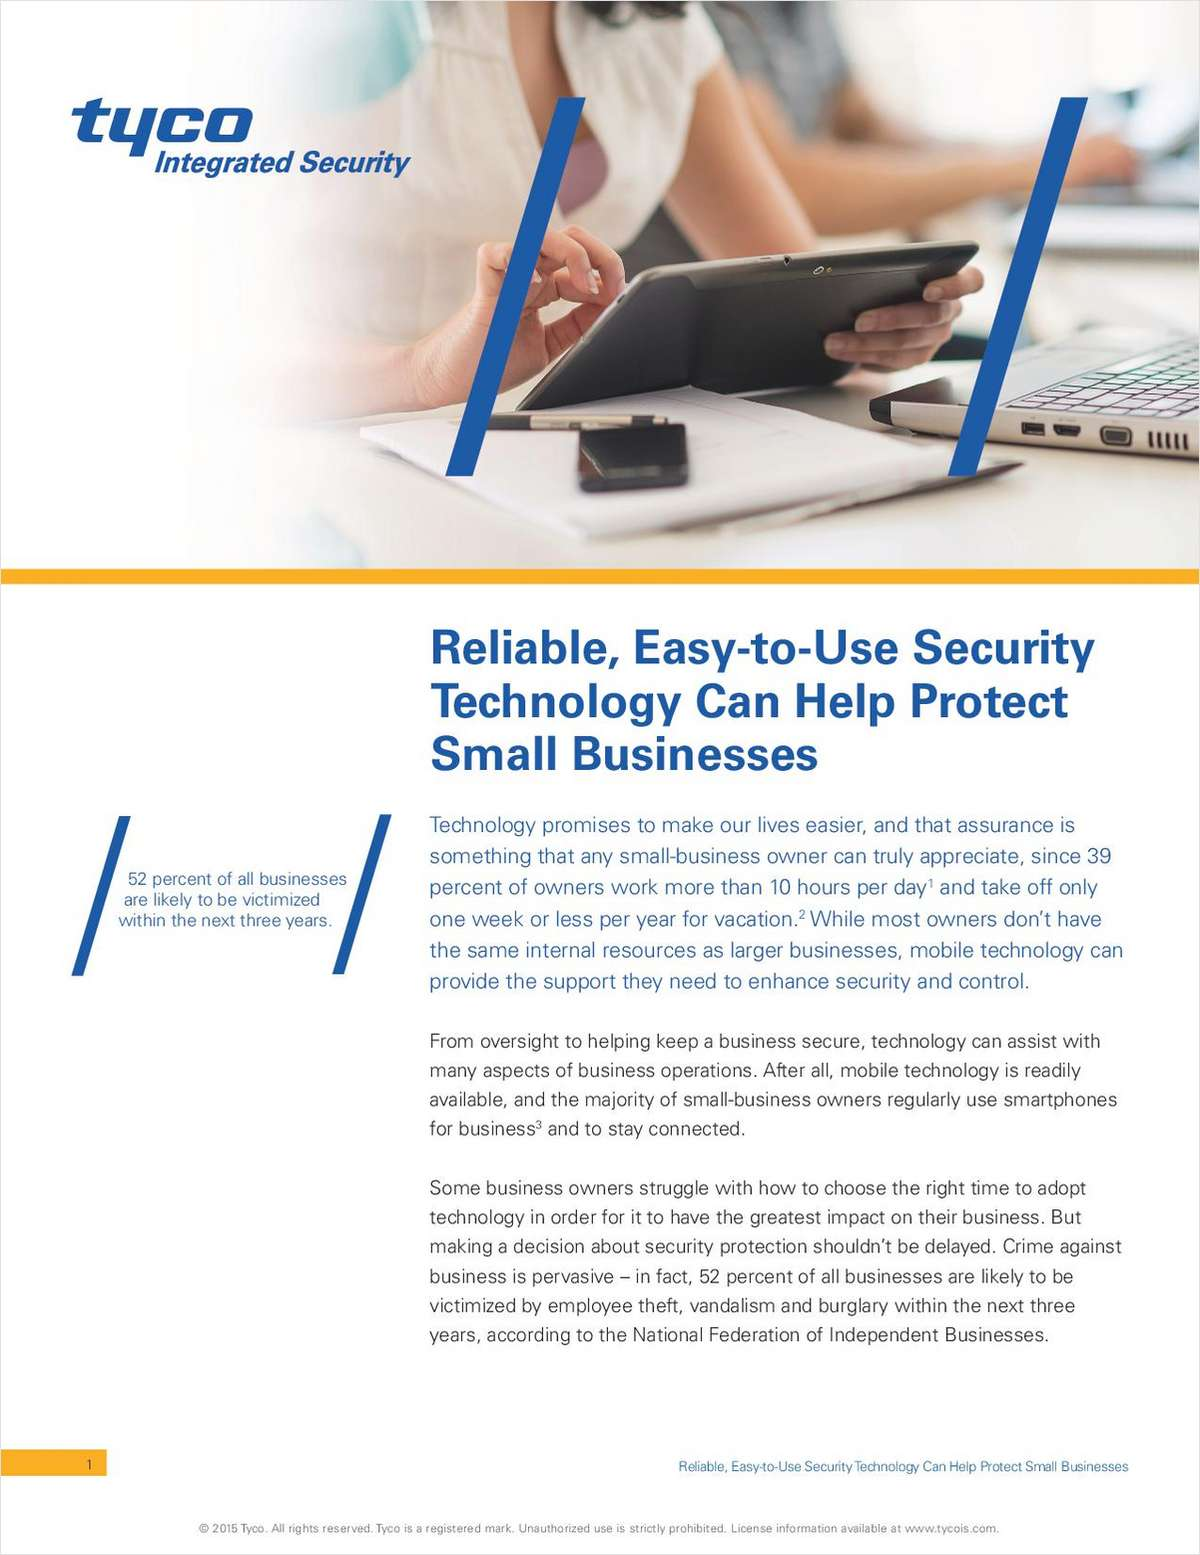 Reliable, Easy-to-Use Security Technology Can Help Protect Small Businesses